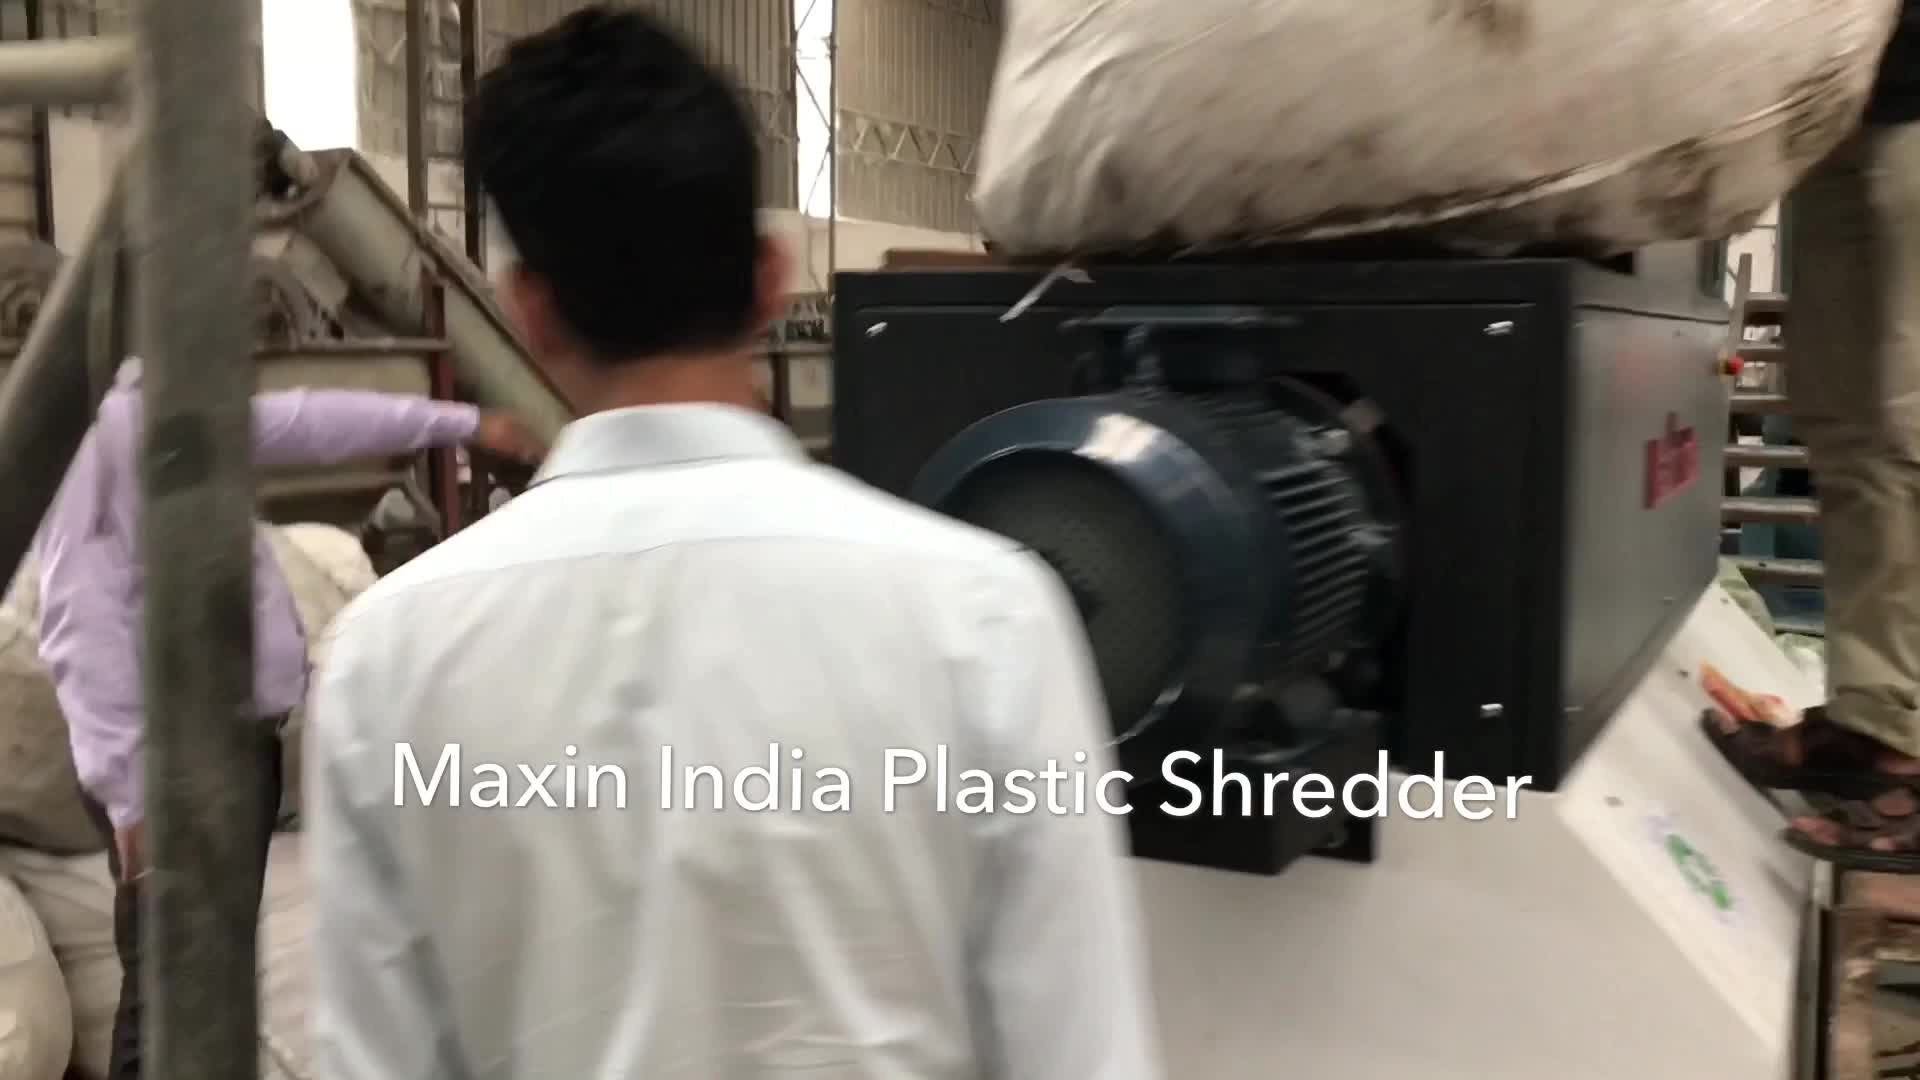 Multipurpose Double Shaft Heavy Duty Industrial Shredder for Recycle Plastic Waste to Reduce, Reuse all type of material.